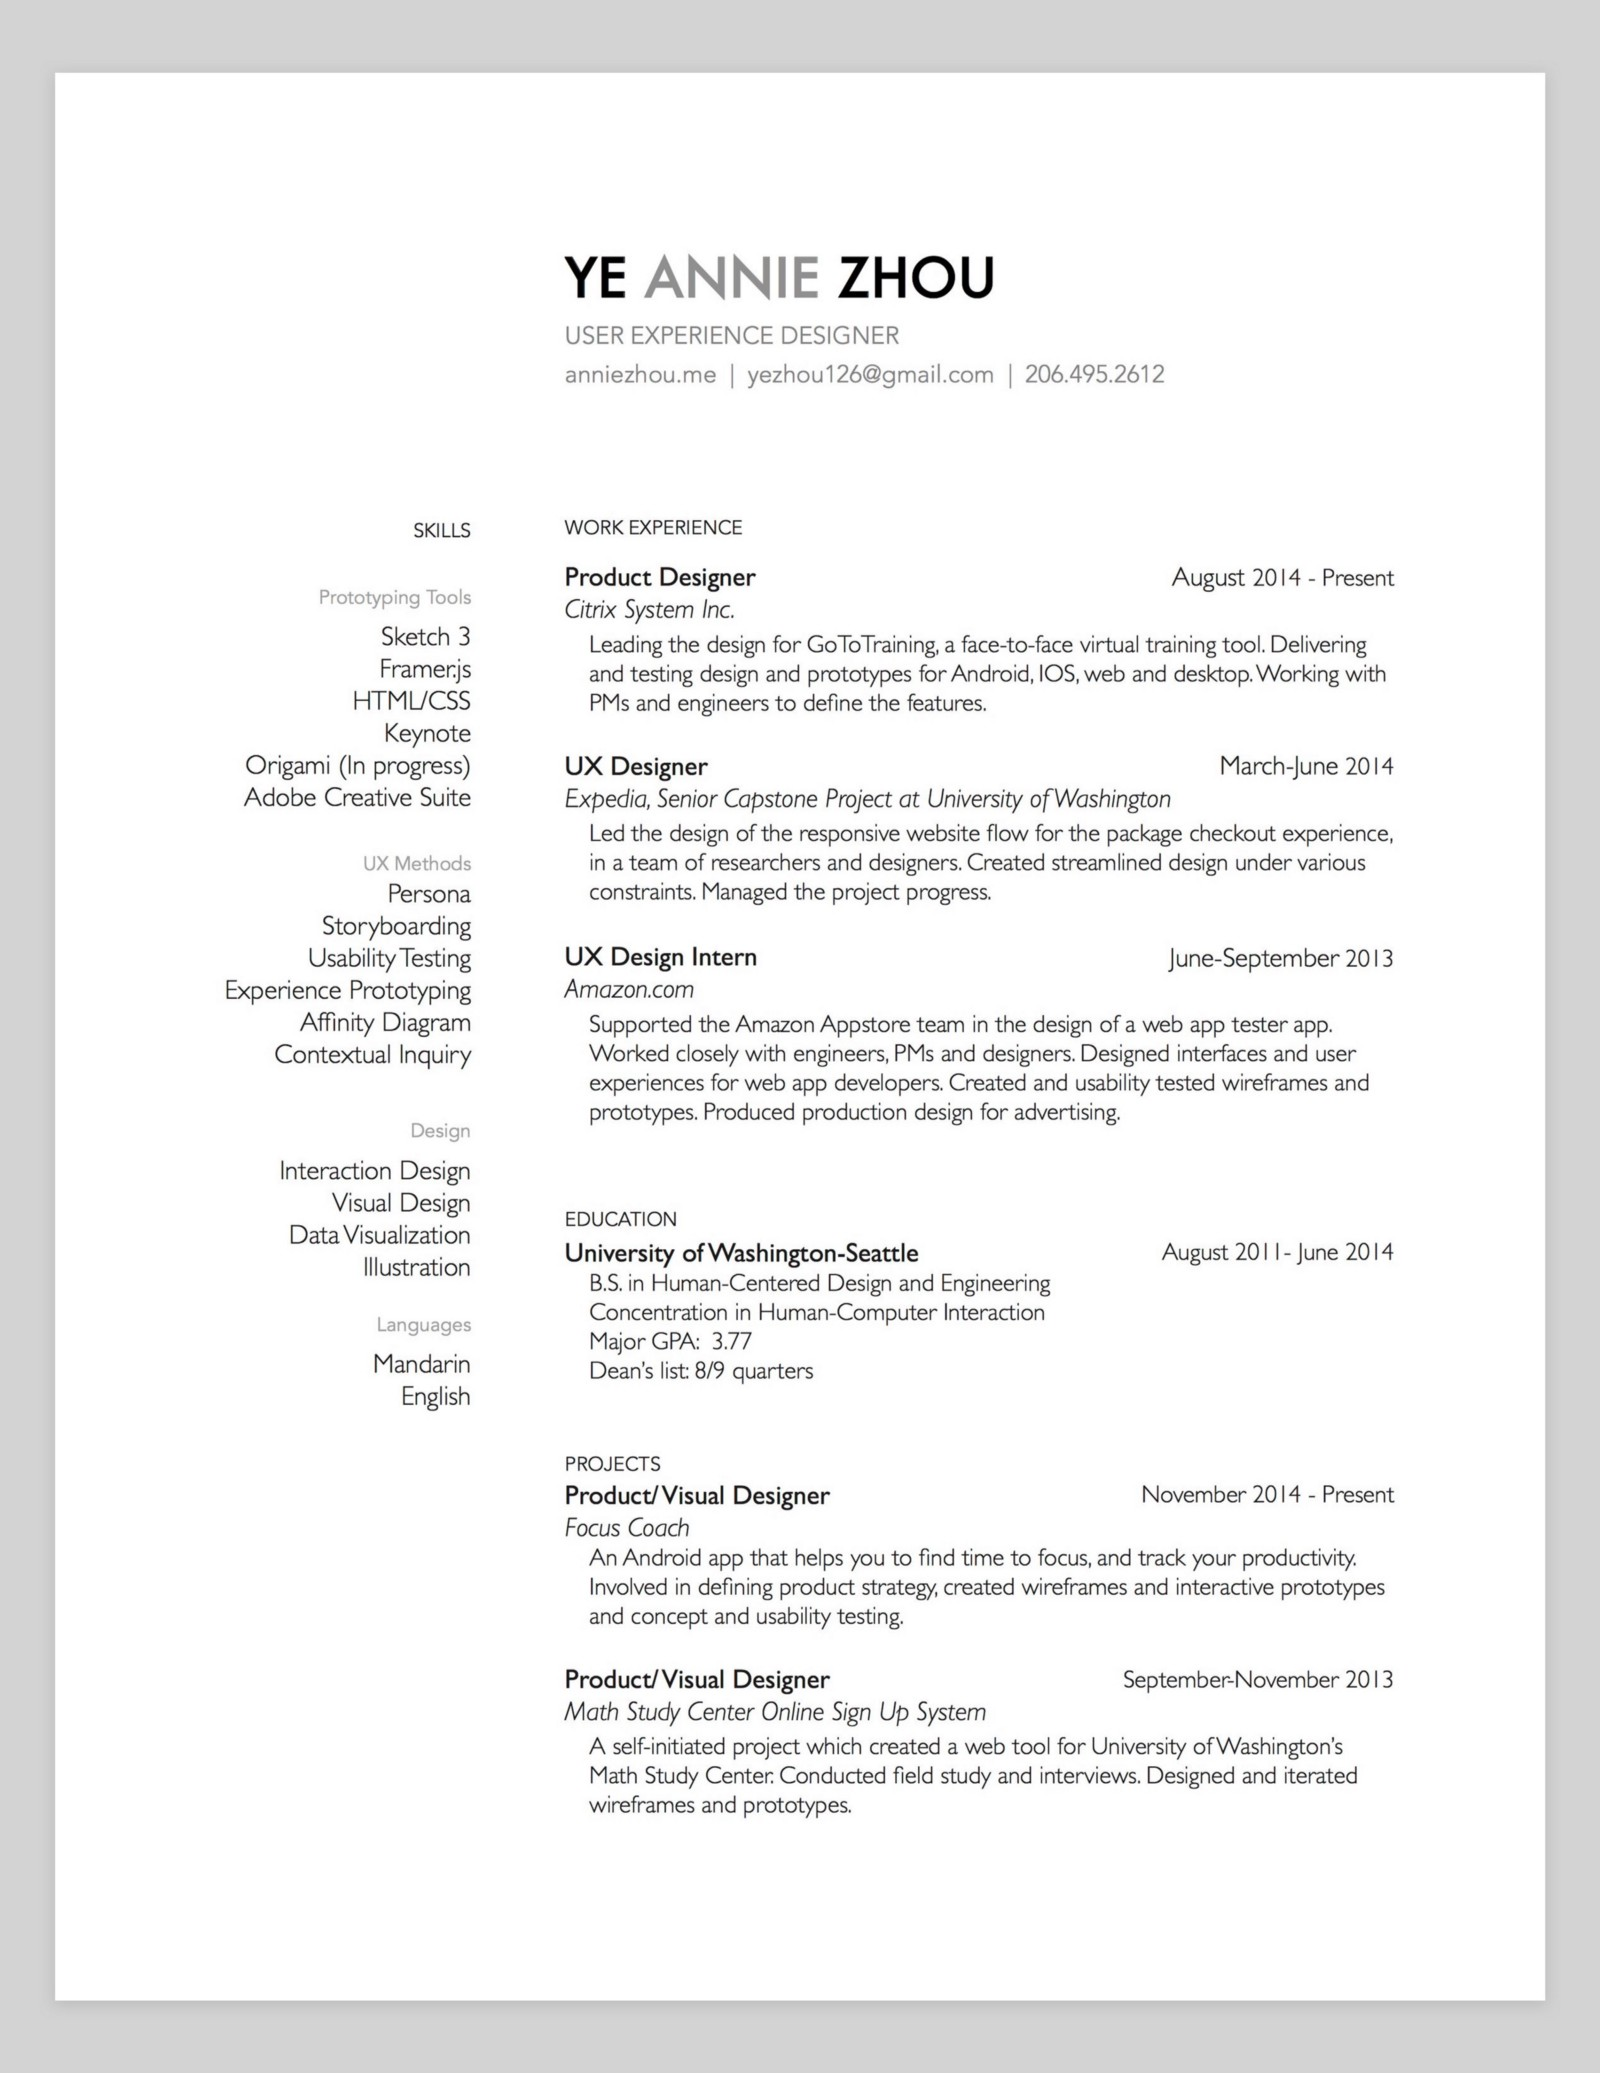 10 Amazing Designer Resumes that Passed Googles Bar